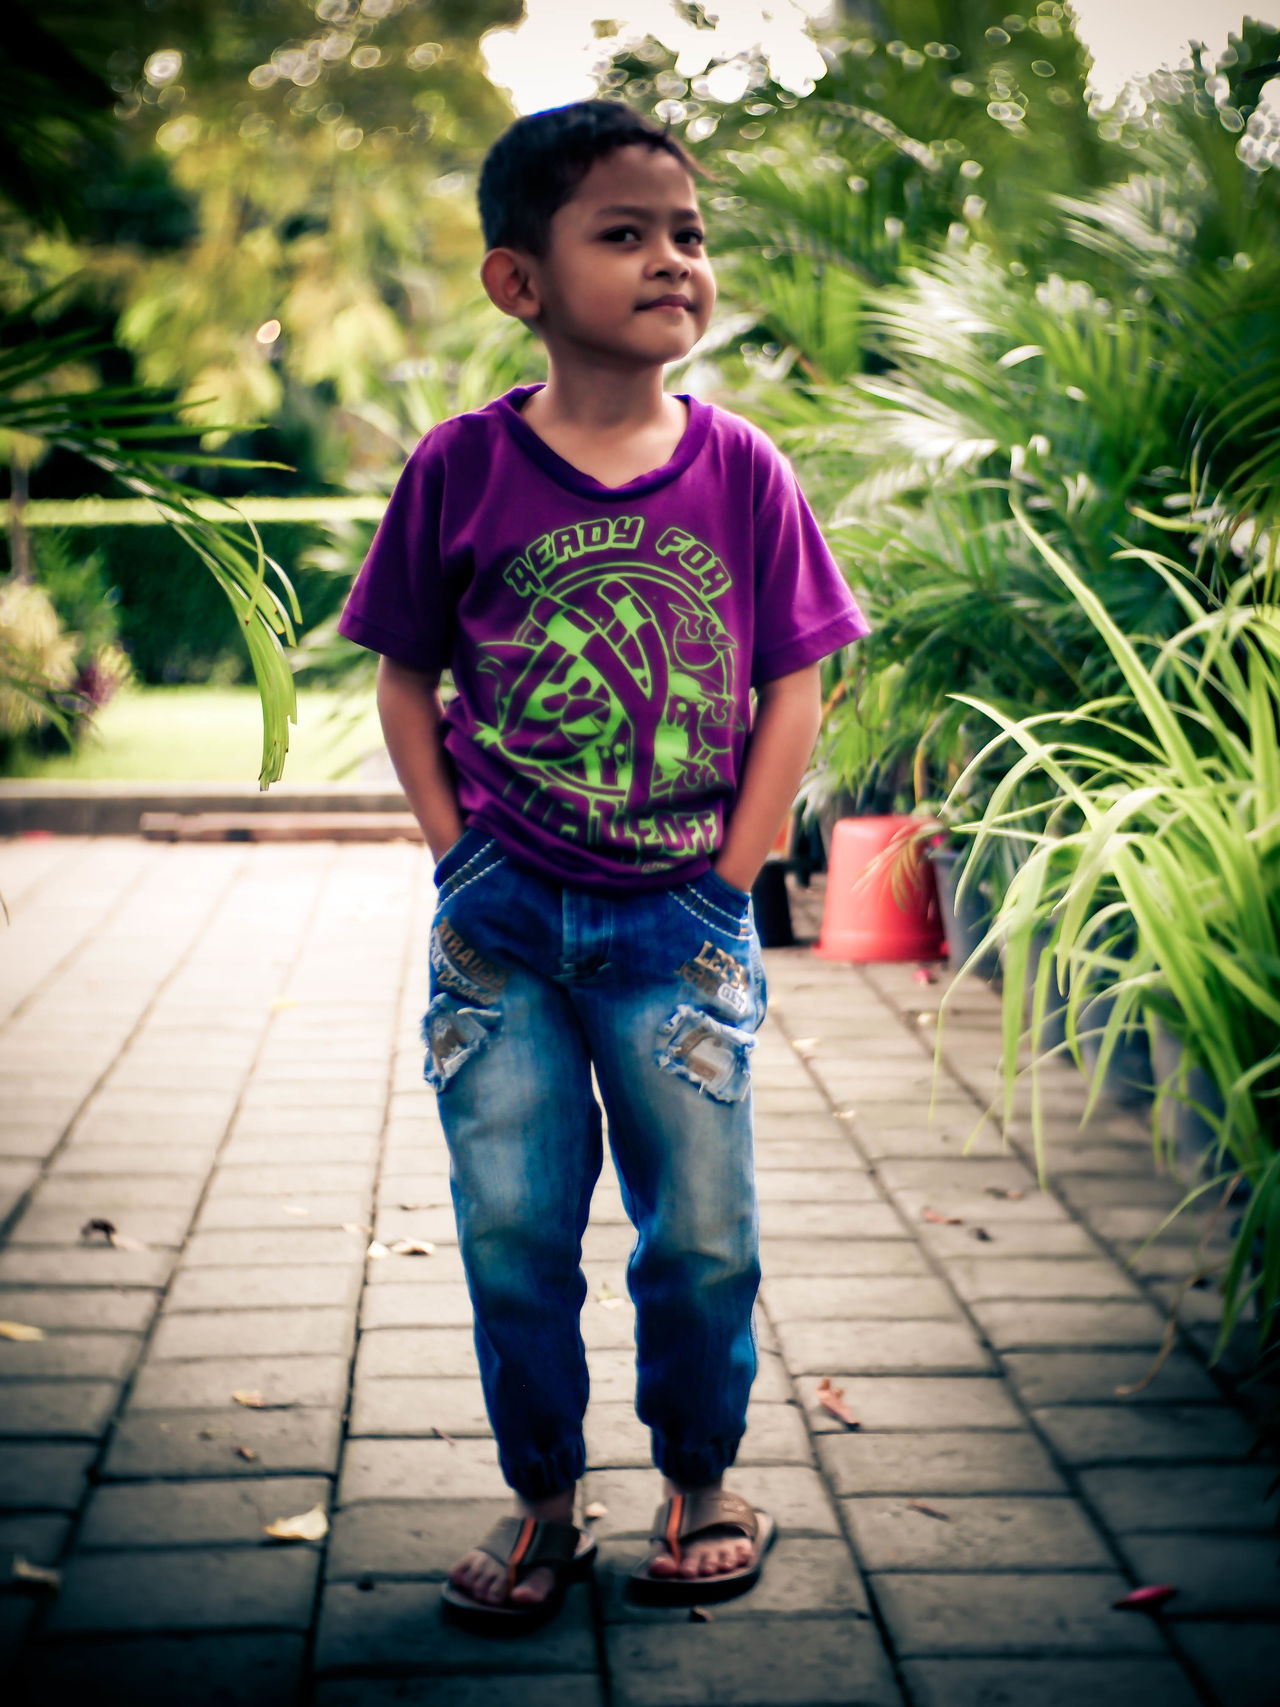 Child Children Only Childhood One Person One Boy Only Full Length Casual Clothing People Girls Elementary Age Boys Front View Standing Outdoors Day Real People Portrait Leisure Activity Fashion